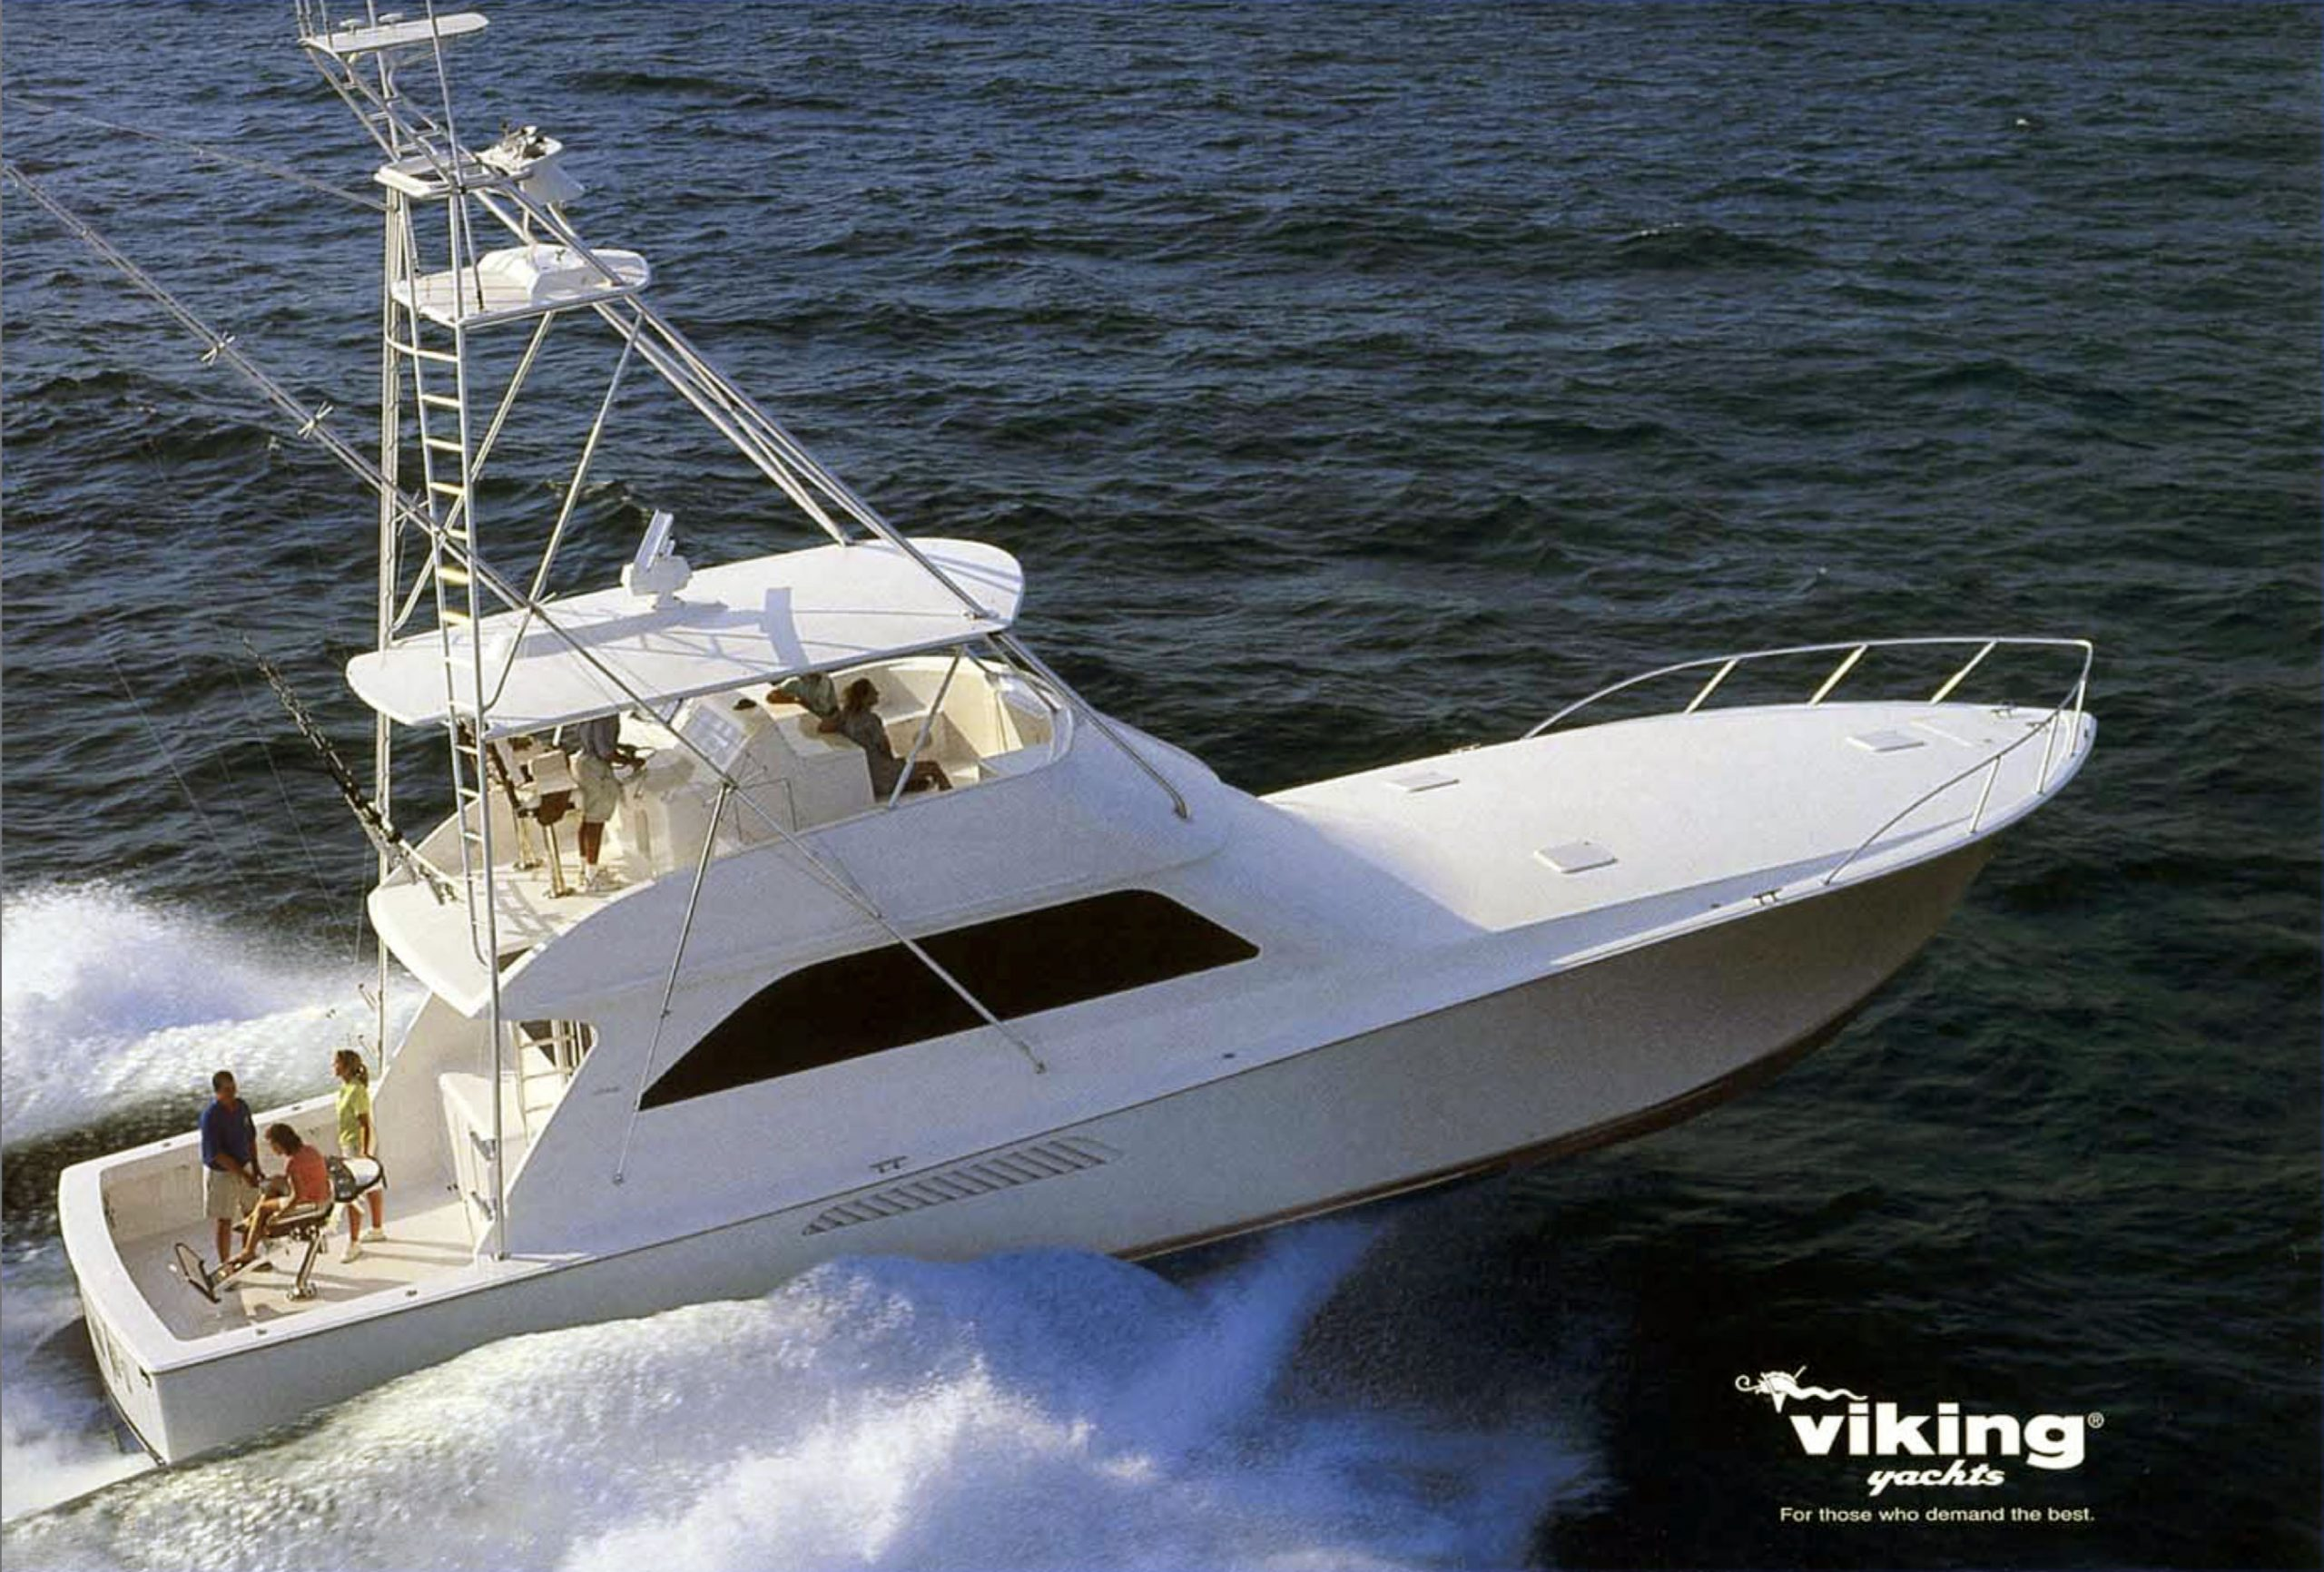 The Viking 61 is the most sought-after big convertible on the brokerage market. HMY has 8 available now.